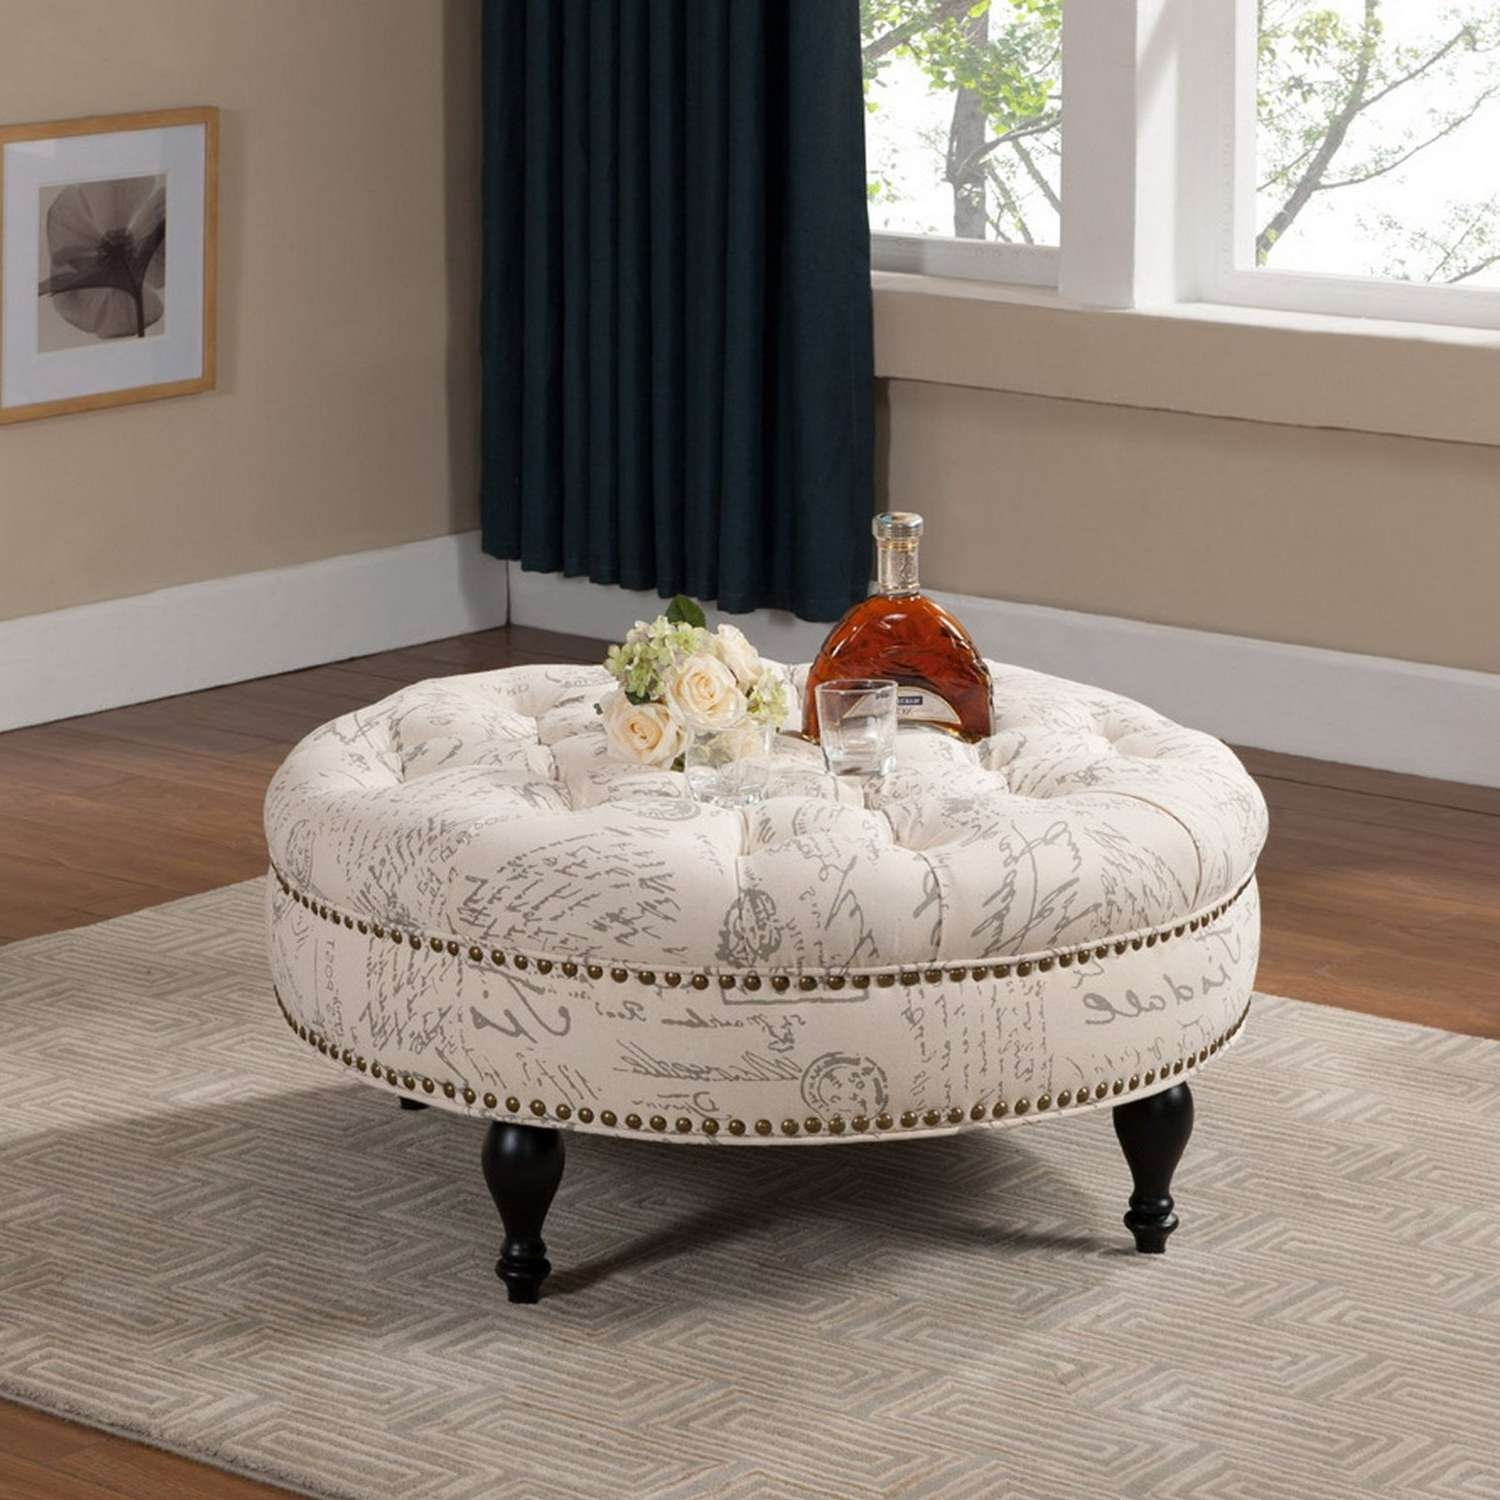 Round Fabric Ottoman Coffee Table – Beautiful Living Room With With Regard To Most Popular Fabric Coffee Tables (View 14 of 20)